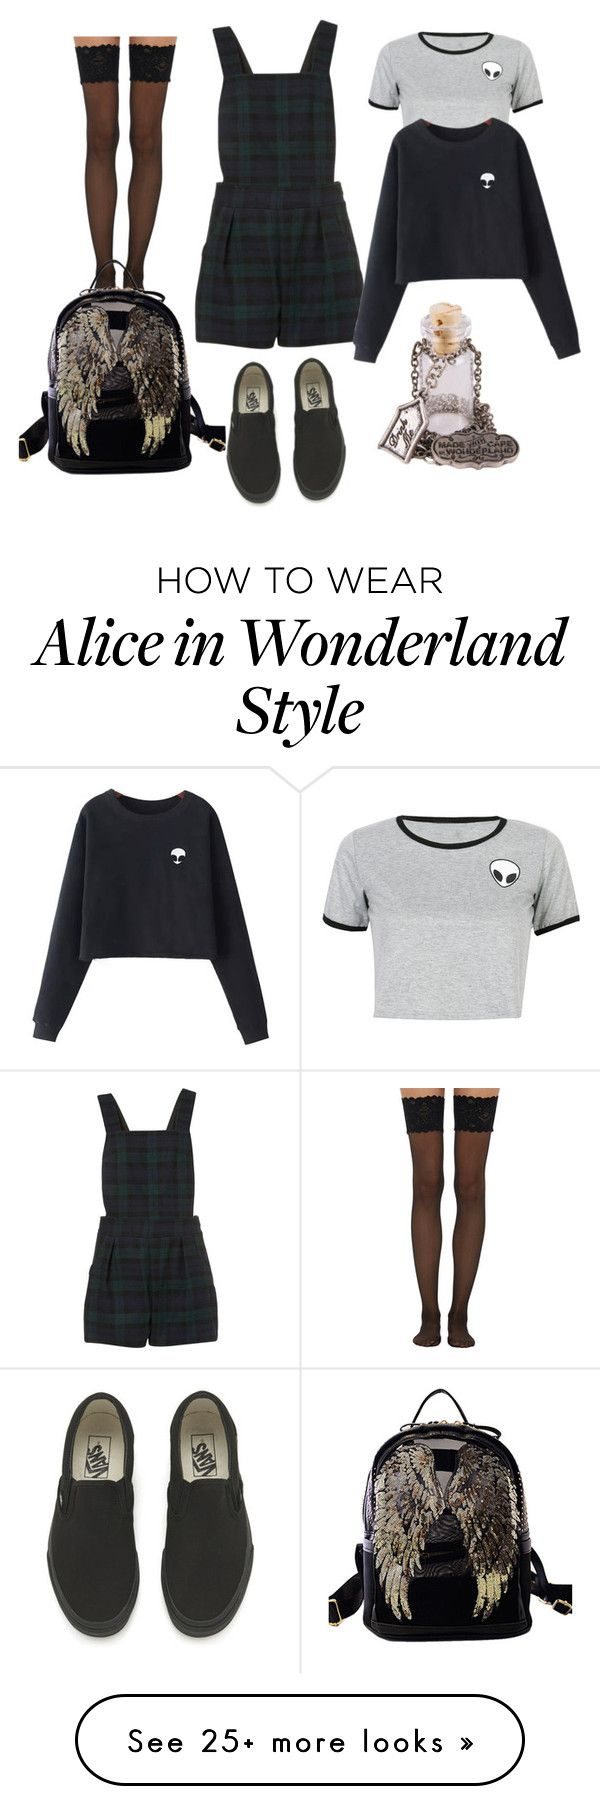 """""""School"""" by claudia-glorioso on Polyvore featuring WithChic, Vans, Disney Couture, Wolford and Chicnova Fashion"""